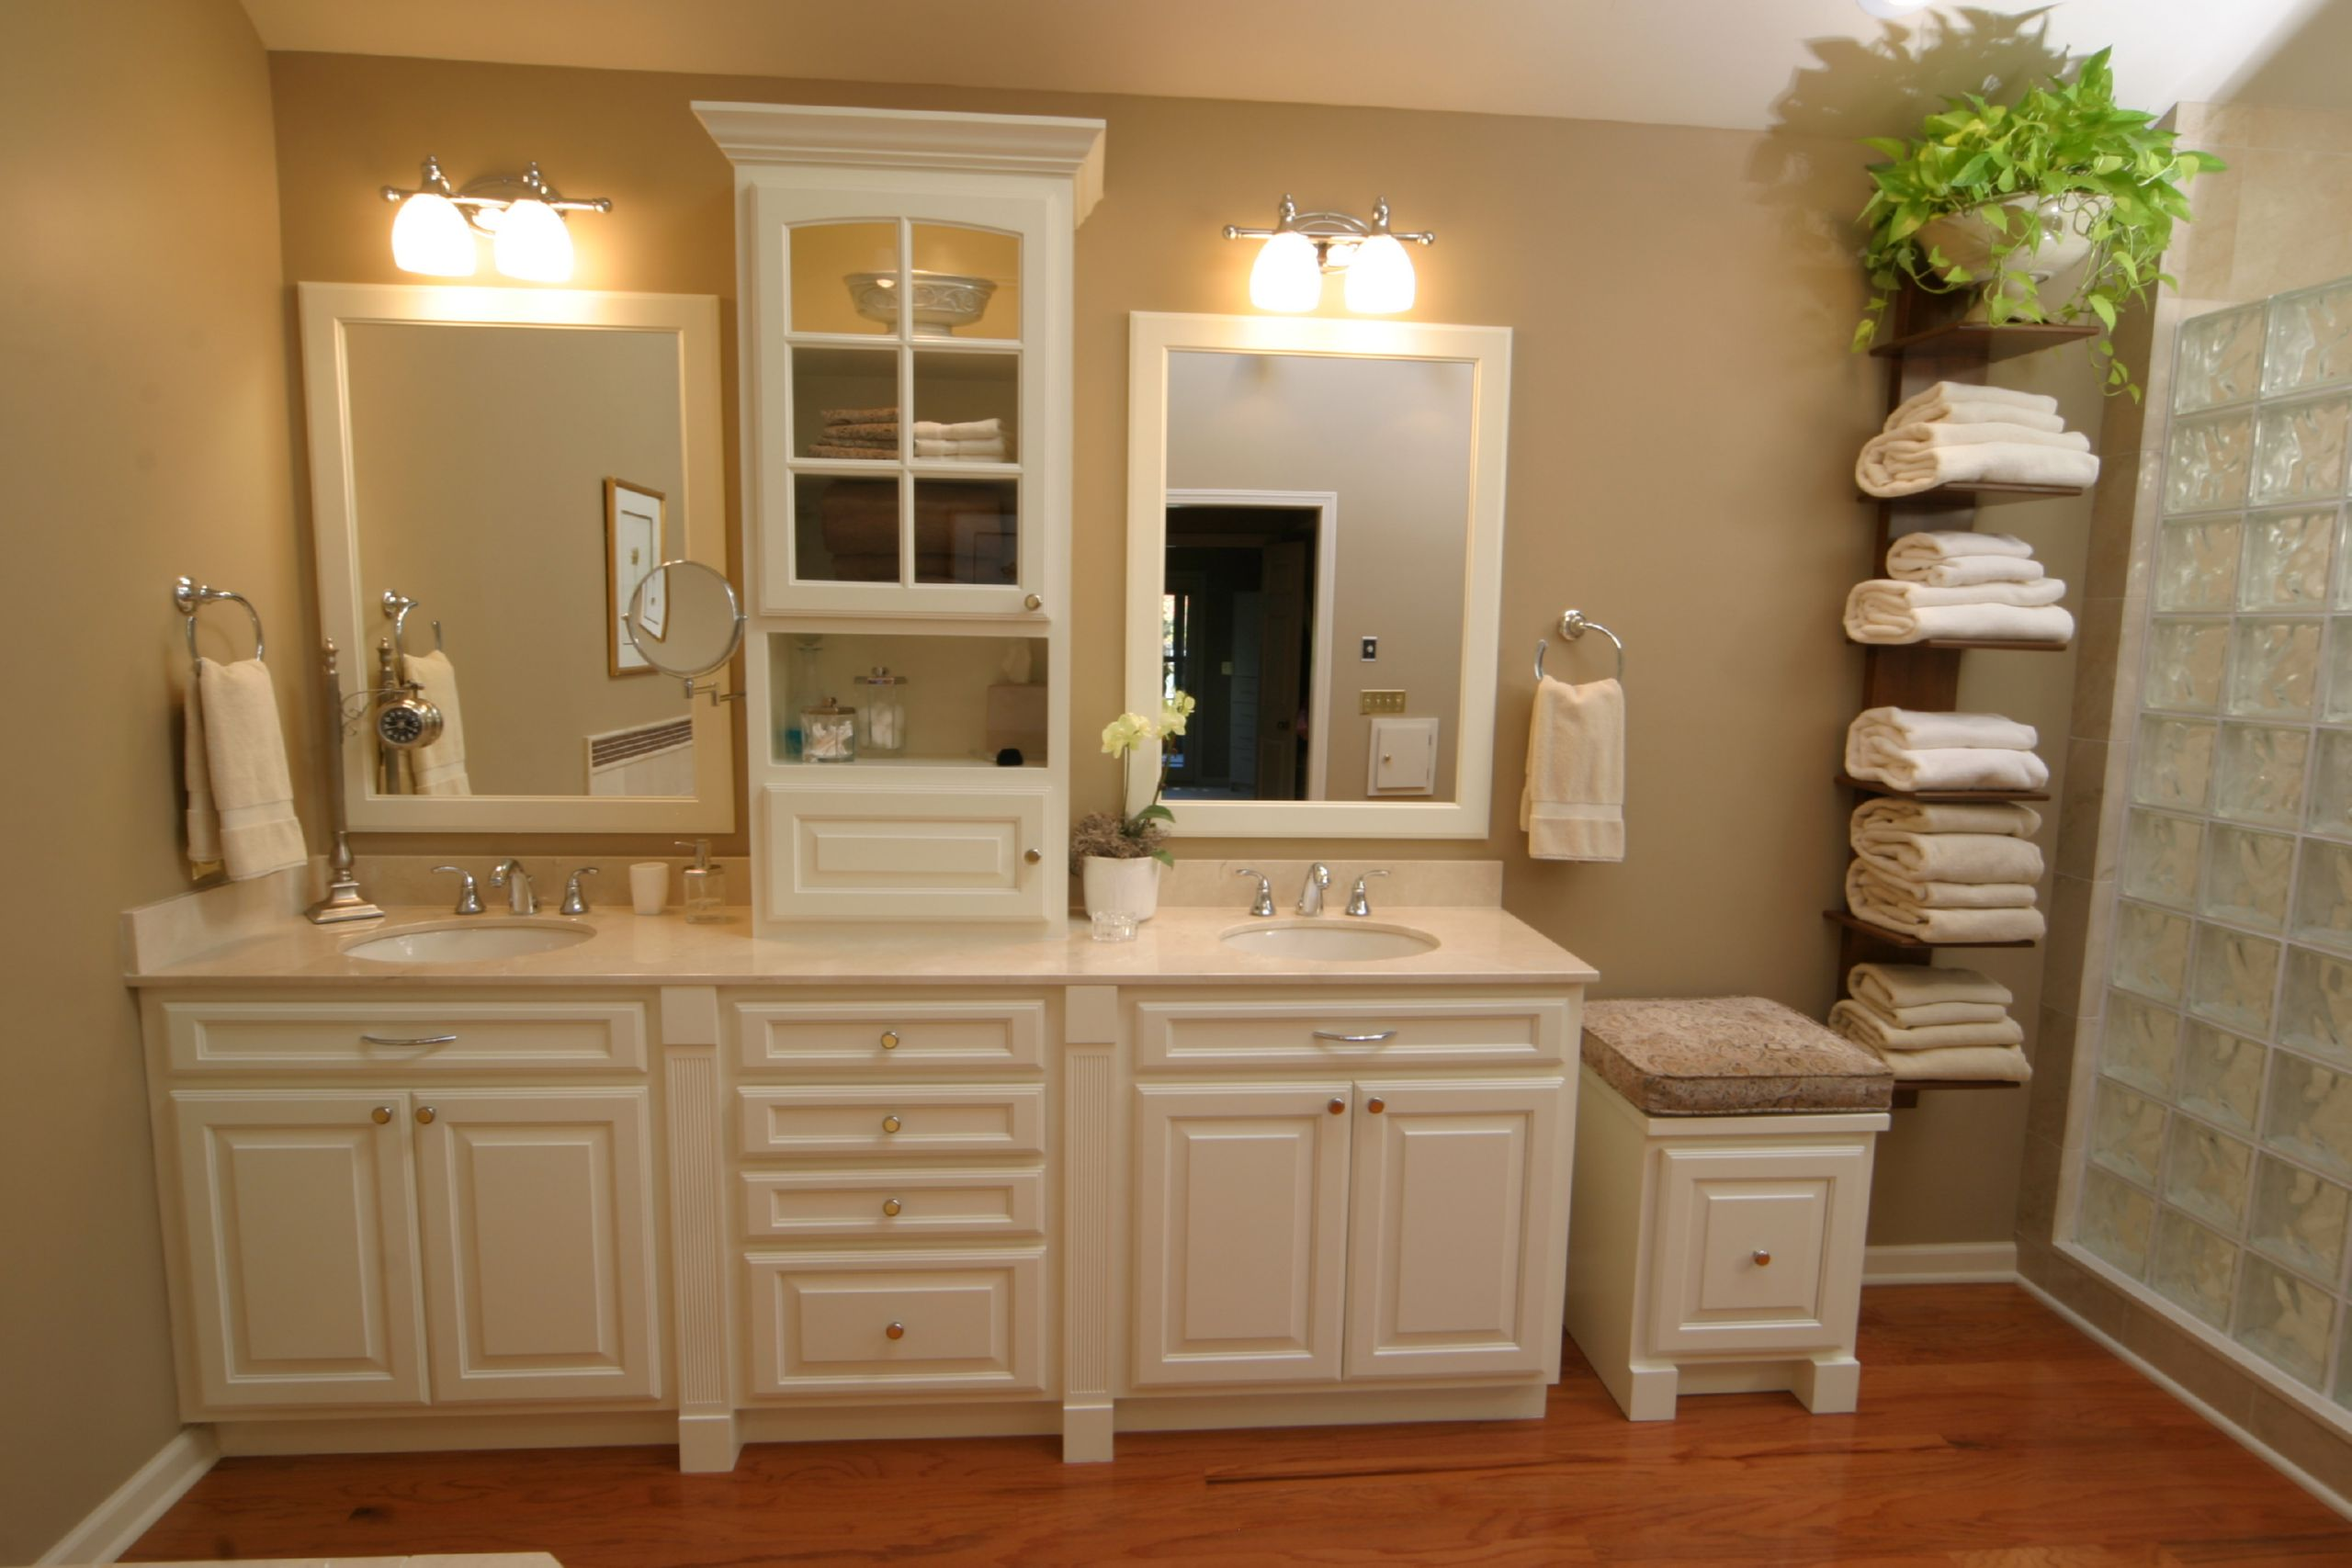 Bathroom remodeling bath remodel contractor for Bathroom cabinet ideas photos